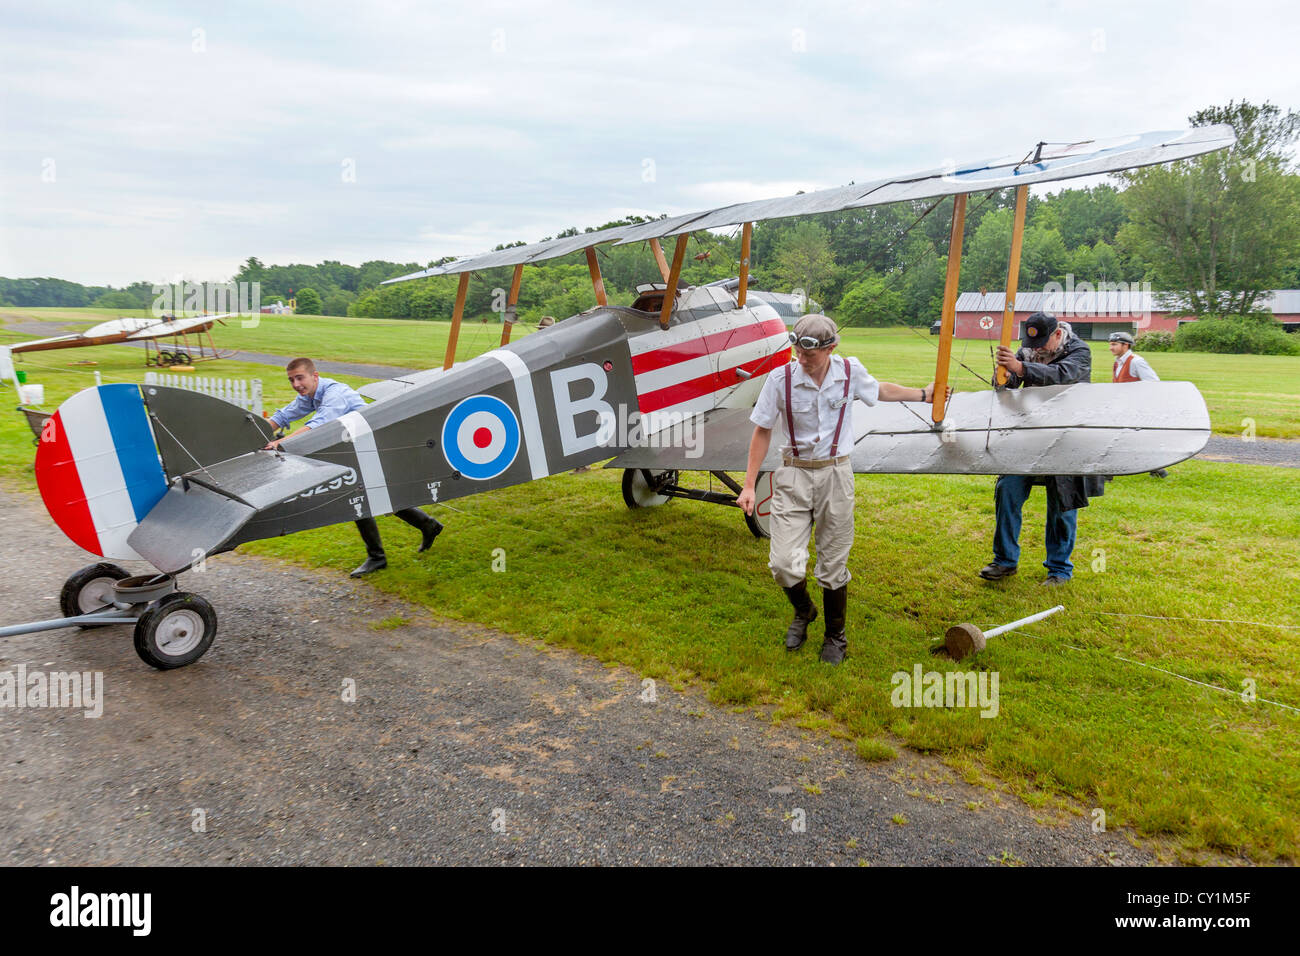 Sopwith Camel antique biplane. - Stock Image